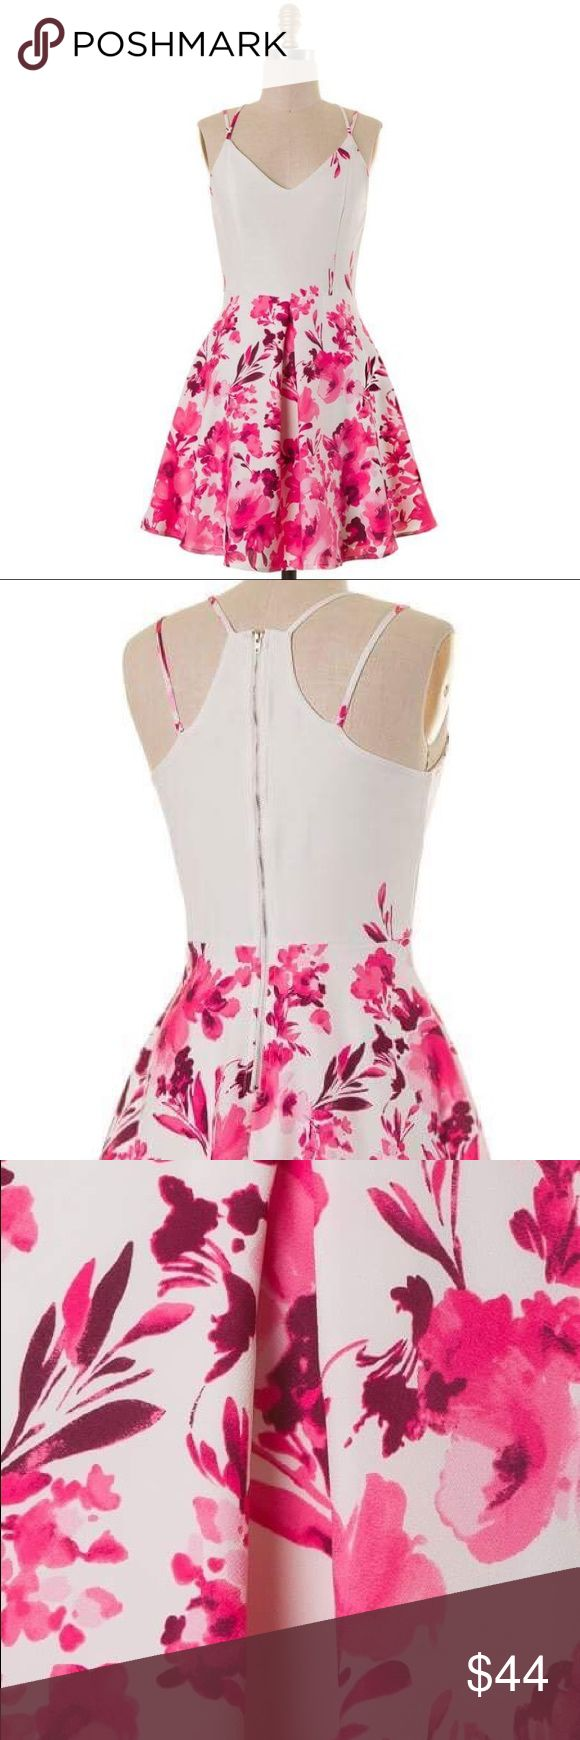 Coming soon! Fit and Flare Pink Floral Dress Coming soon! Blue and White will also be available Naturally Spiritual Dresses